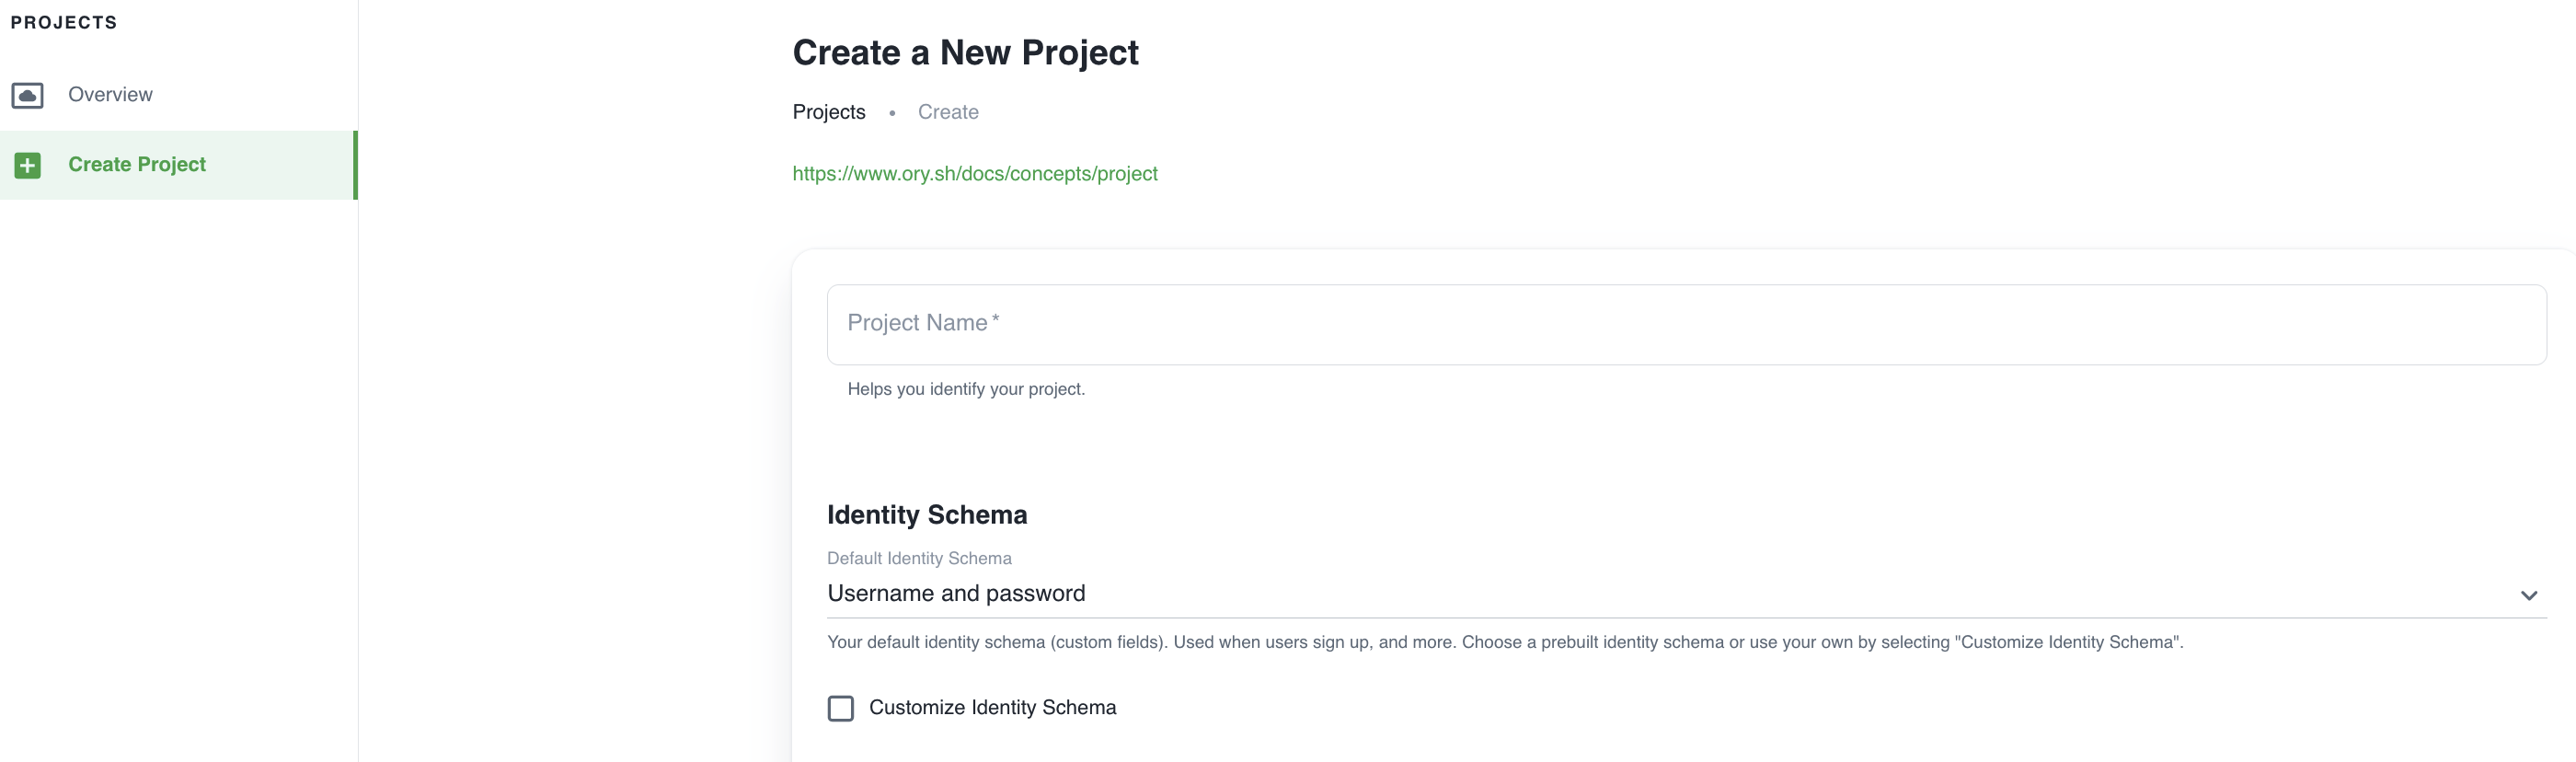 Ory Cloud Project creation screen